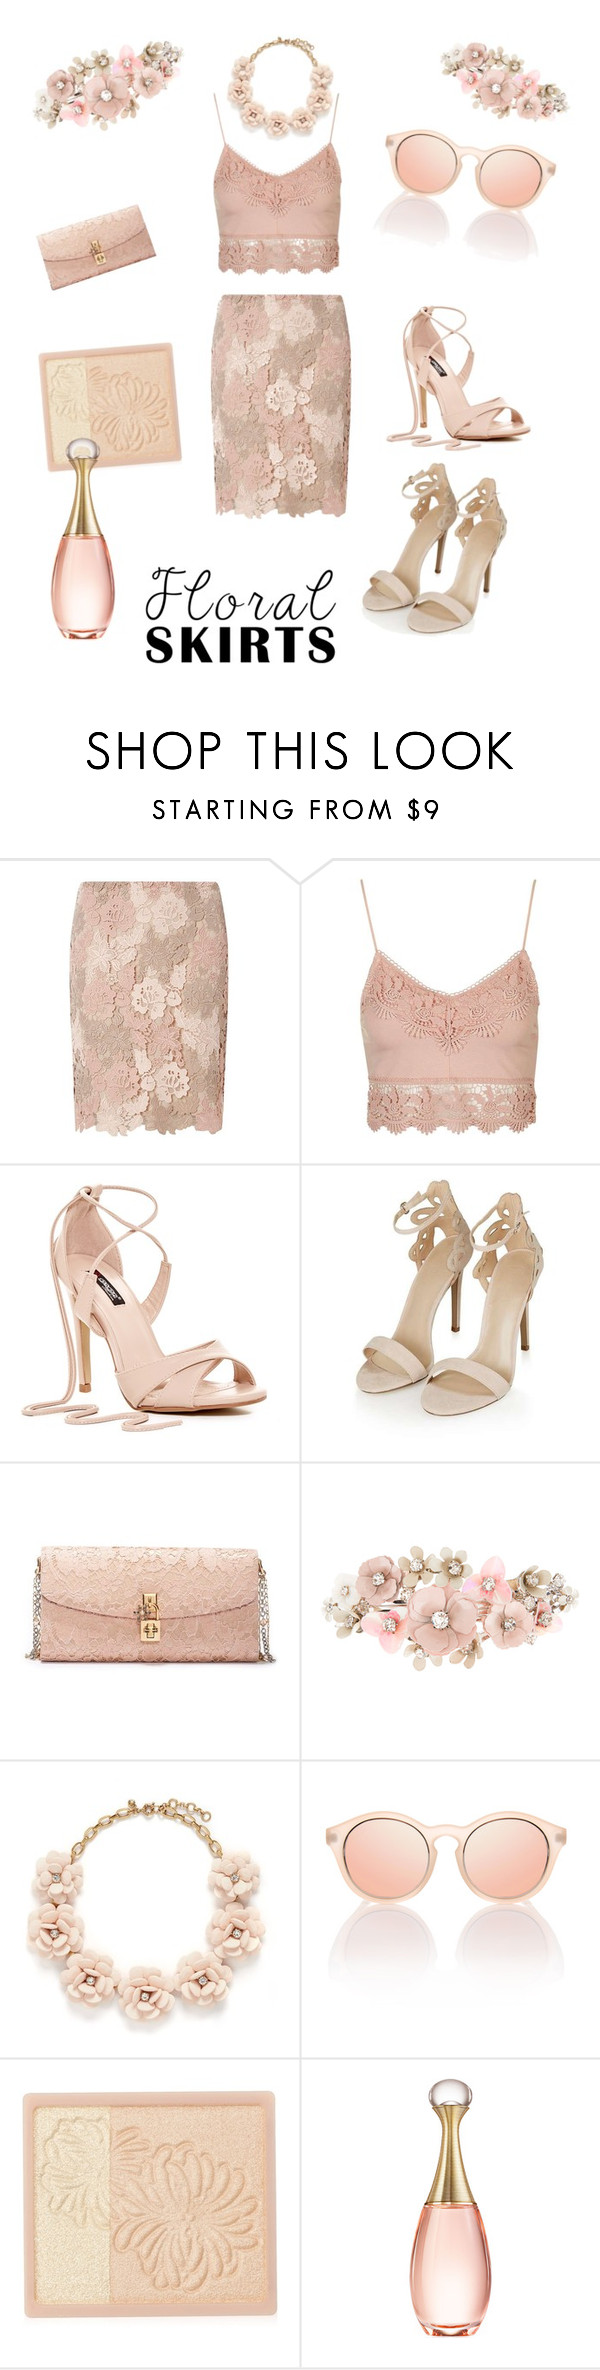 """""""Flower nude"""" by lillialessandra ❤ liked on Polyvore featuring Dorothy Perkins, Topshop, Dolce&Gabbana, Accessorize, J.Crew, Paul & Joe, Christian Dior and Floralskirts"""